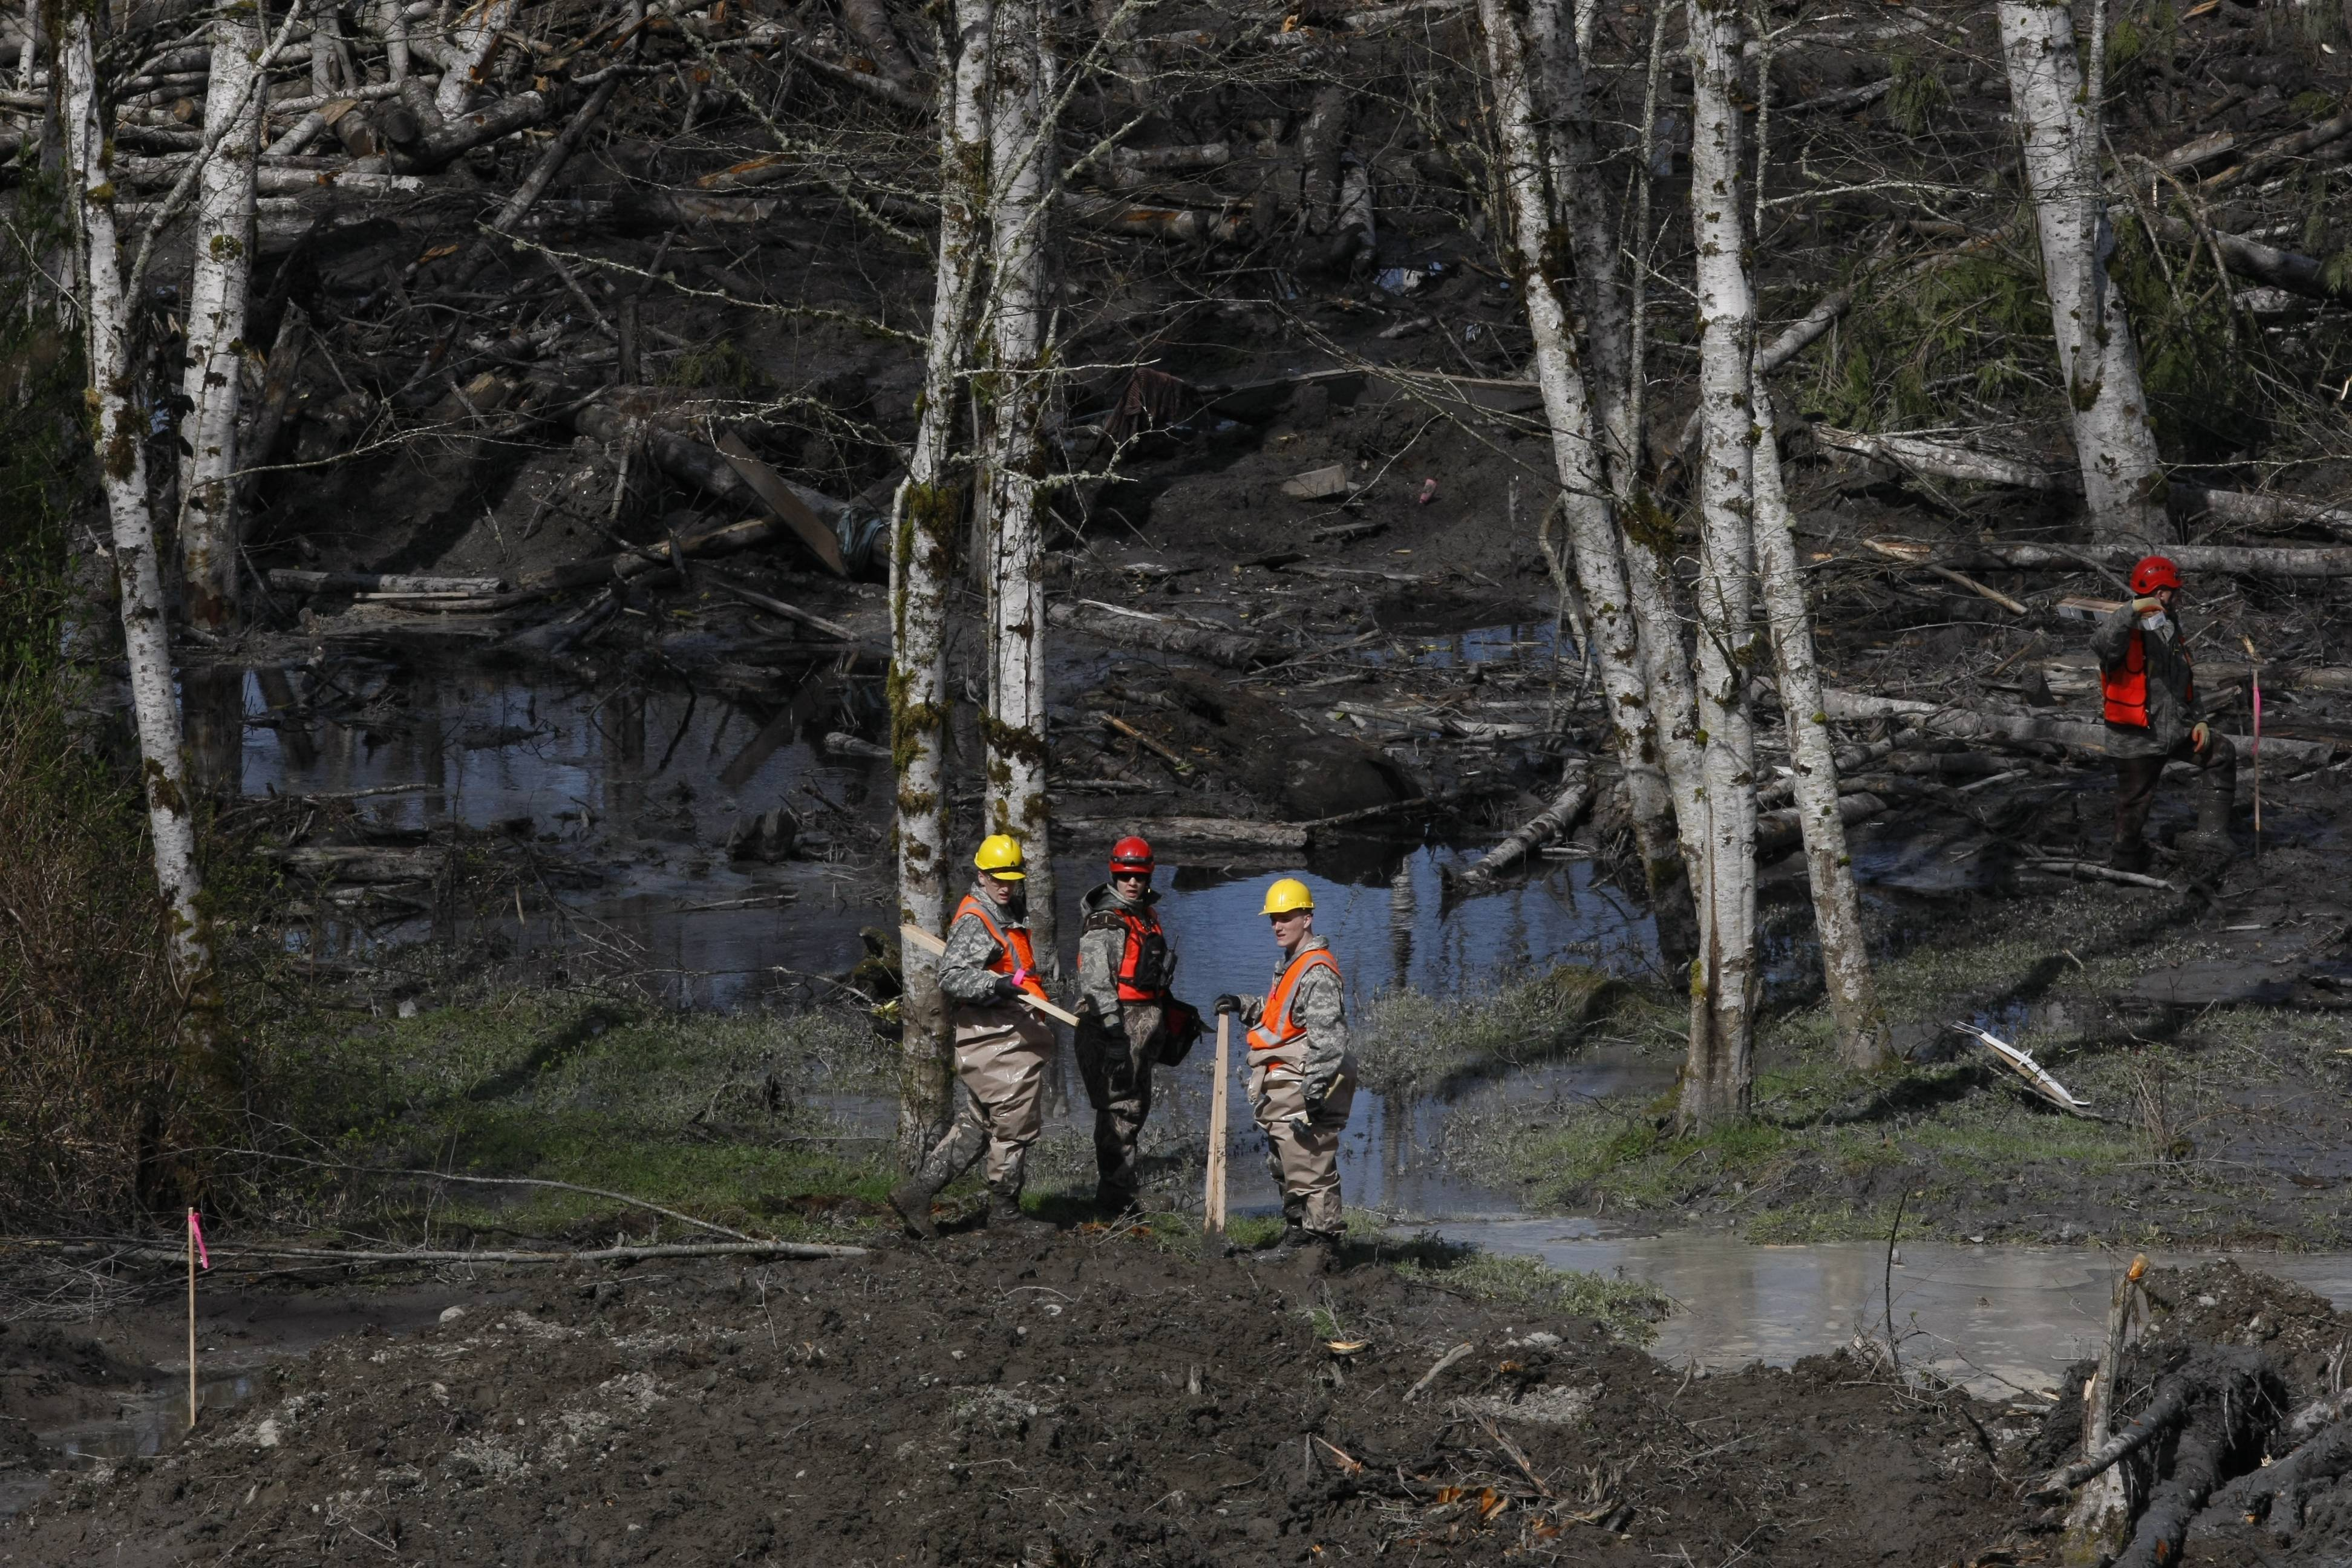 More mudslide victims found as state seeks new aid